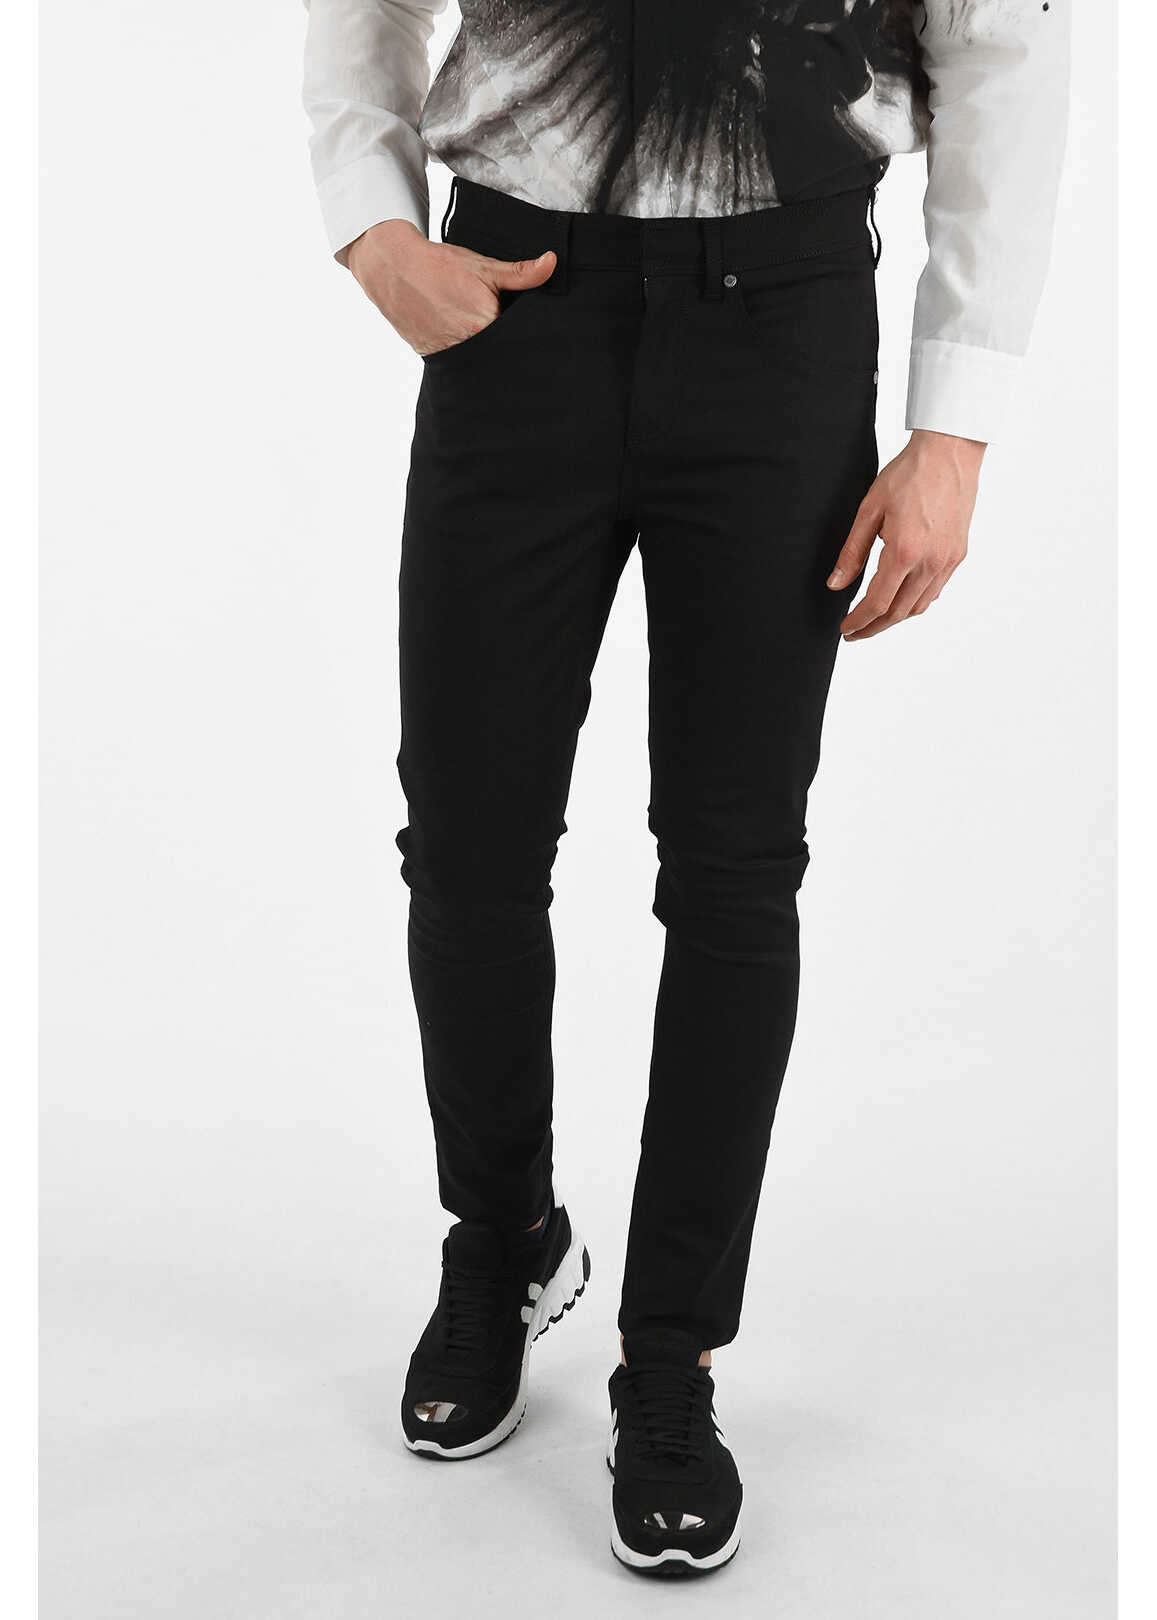 Neil Barrett Utility Super Skinny Fit Jeans with Hidden Closure 16 cm BLACK imagine